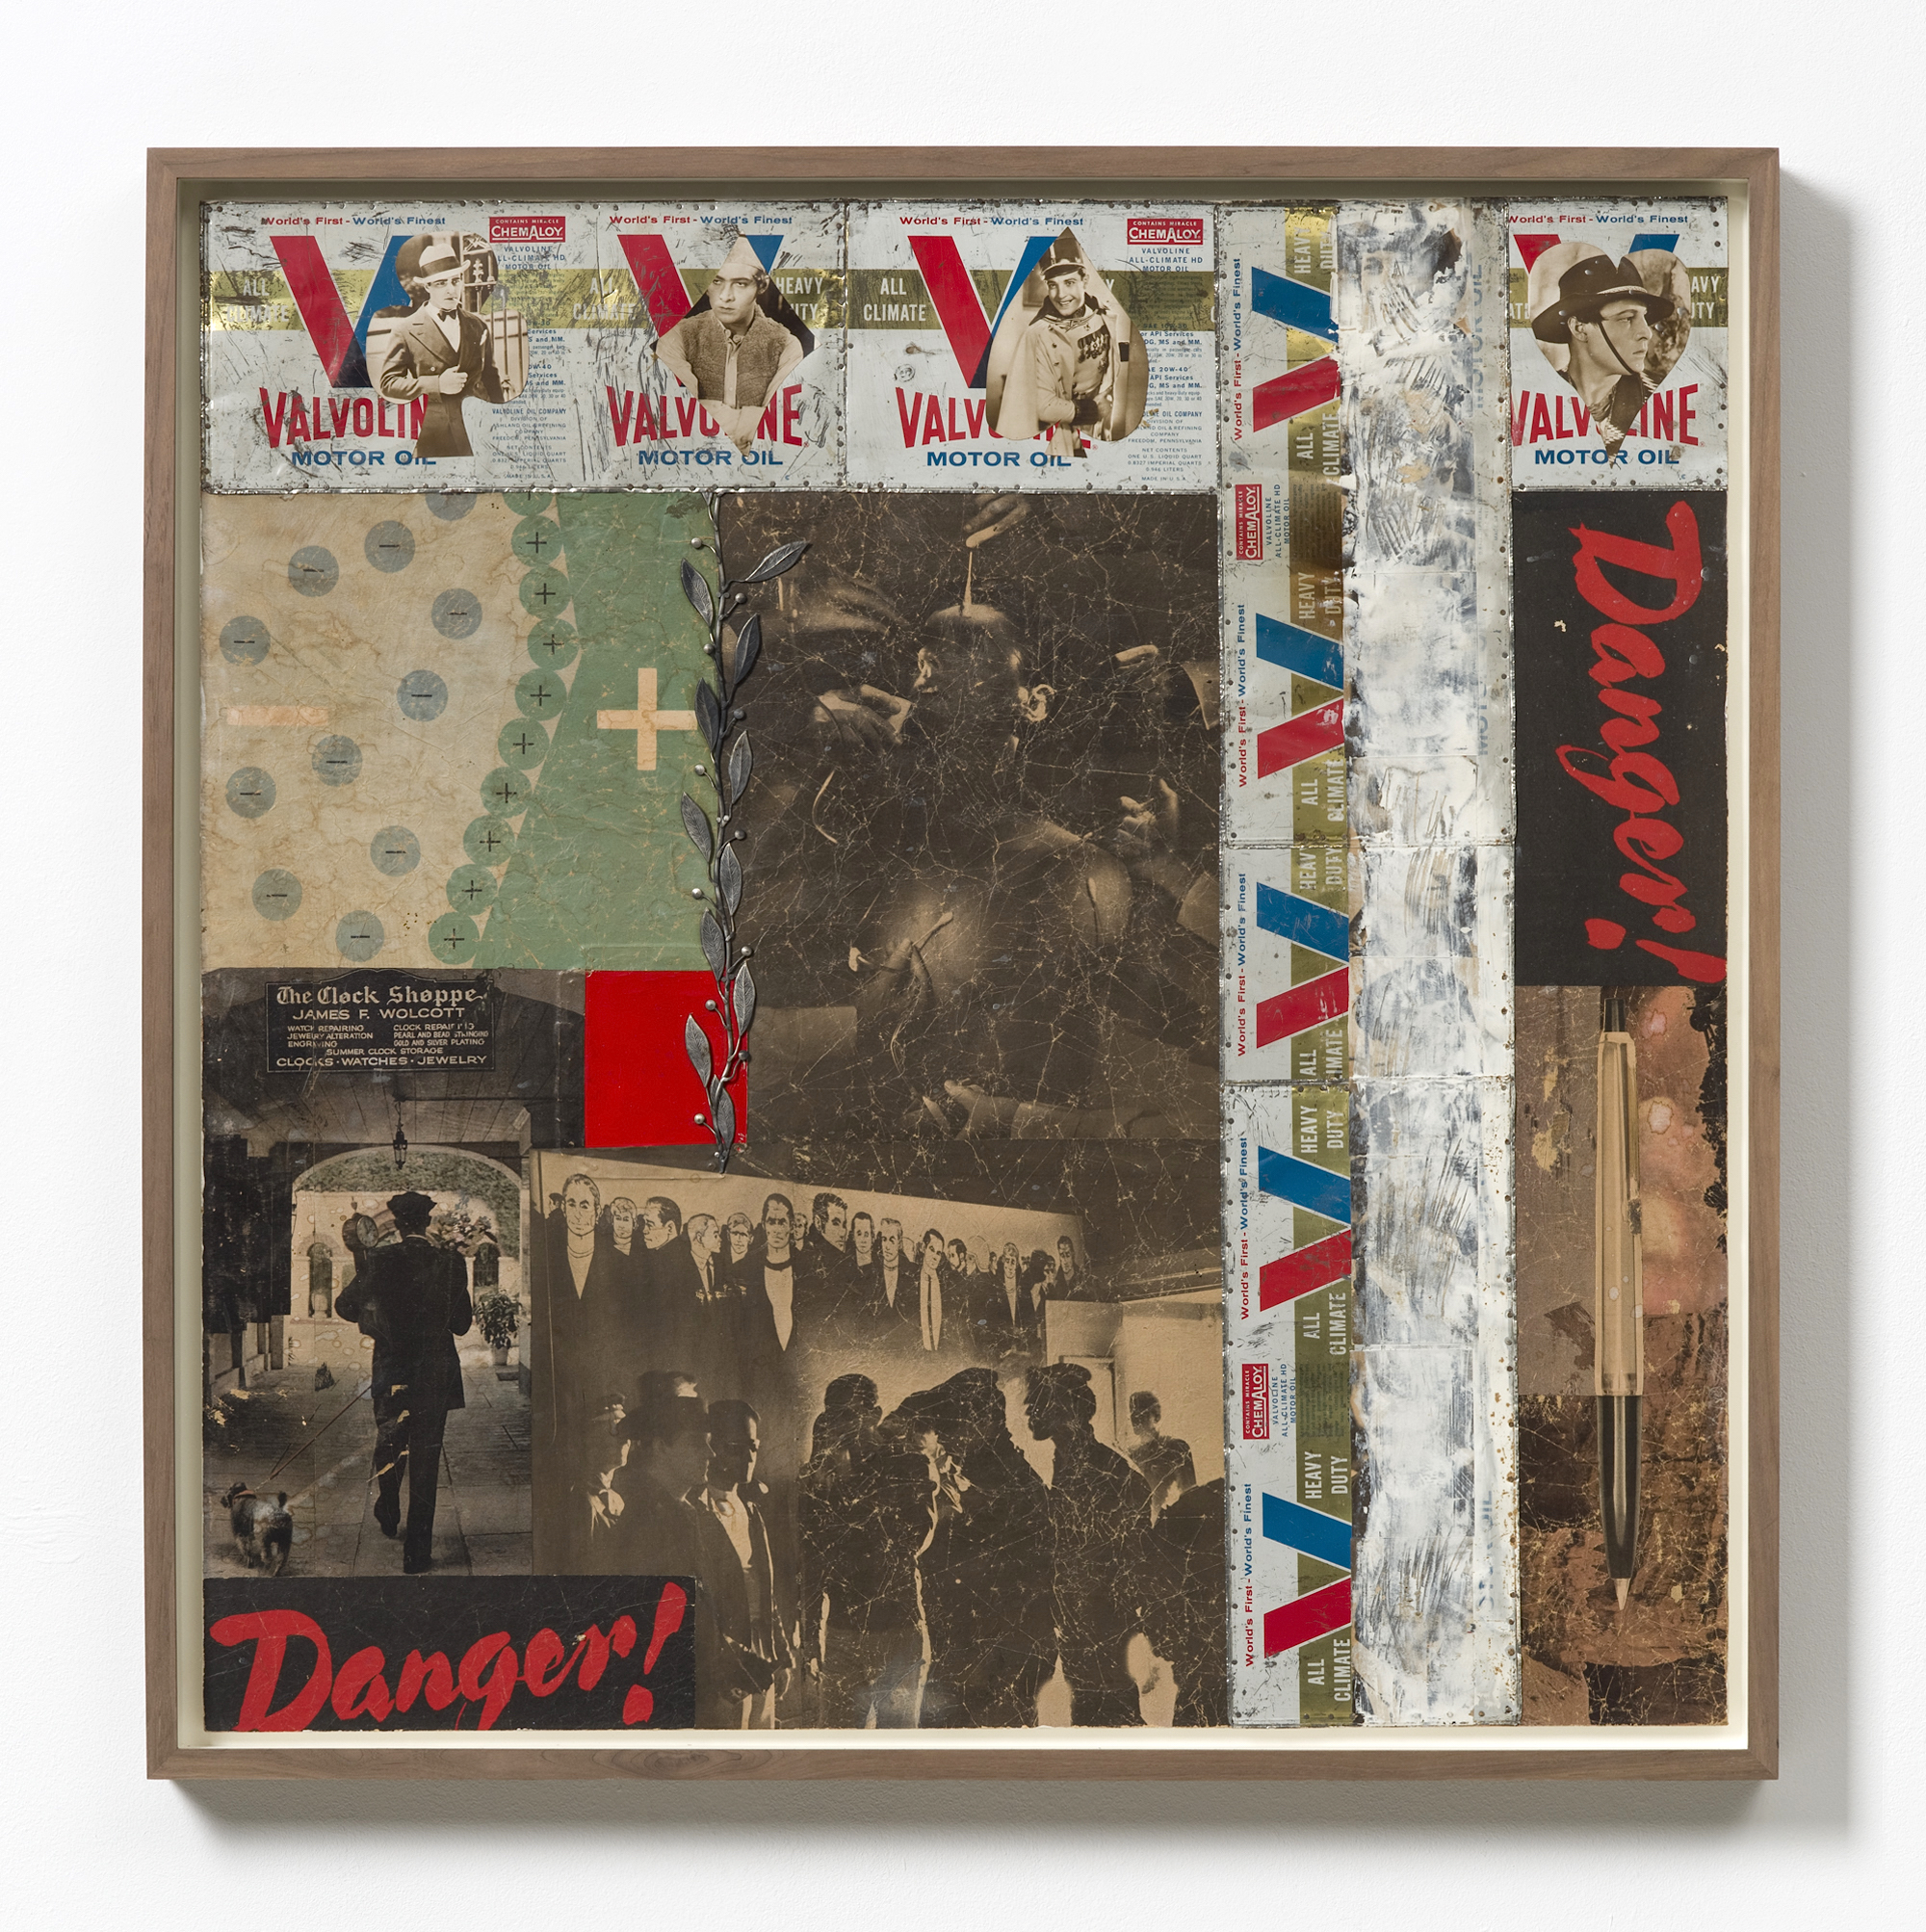 Enough, printed material, printed photographs, print on metal, metal object, paint on plywood, 75 x 75 cm, 1965